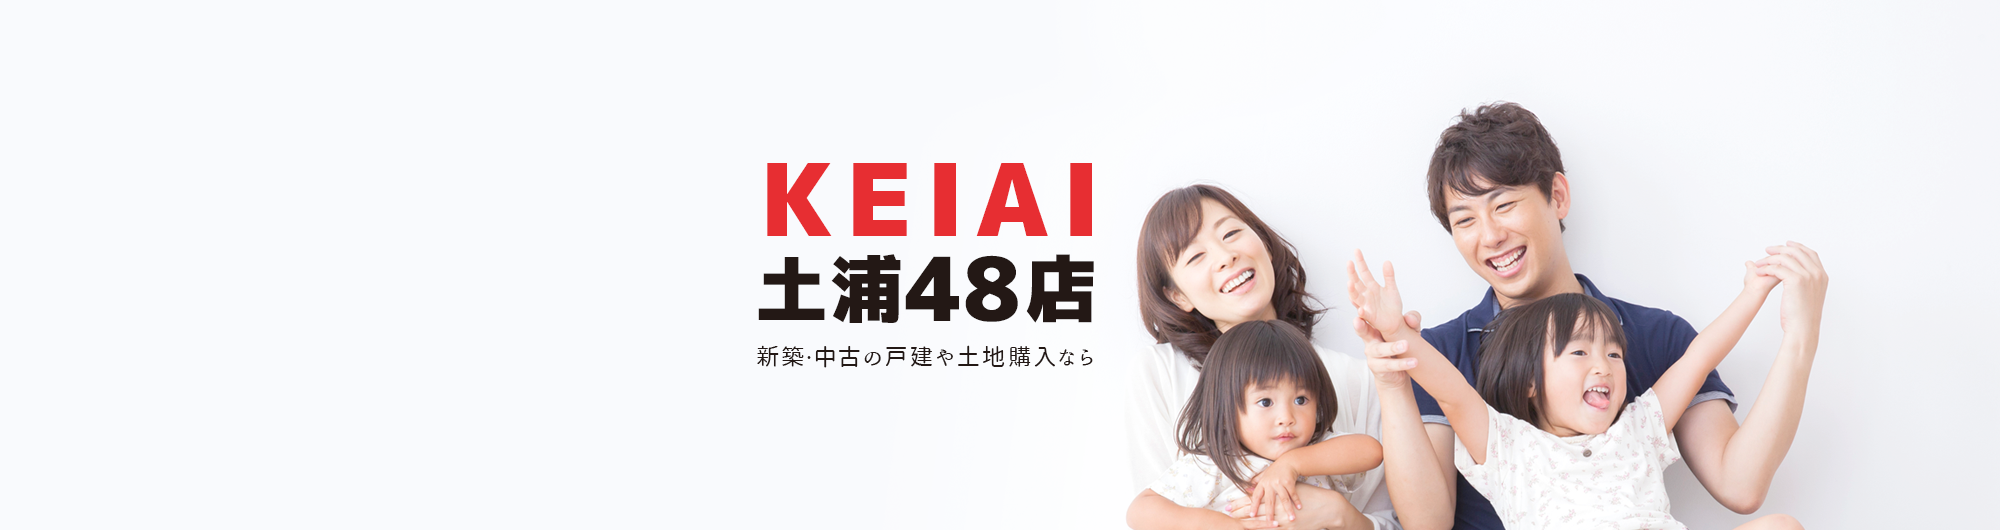 KEIAI 土浦48店   新築・中古の戸建や土地購入なら